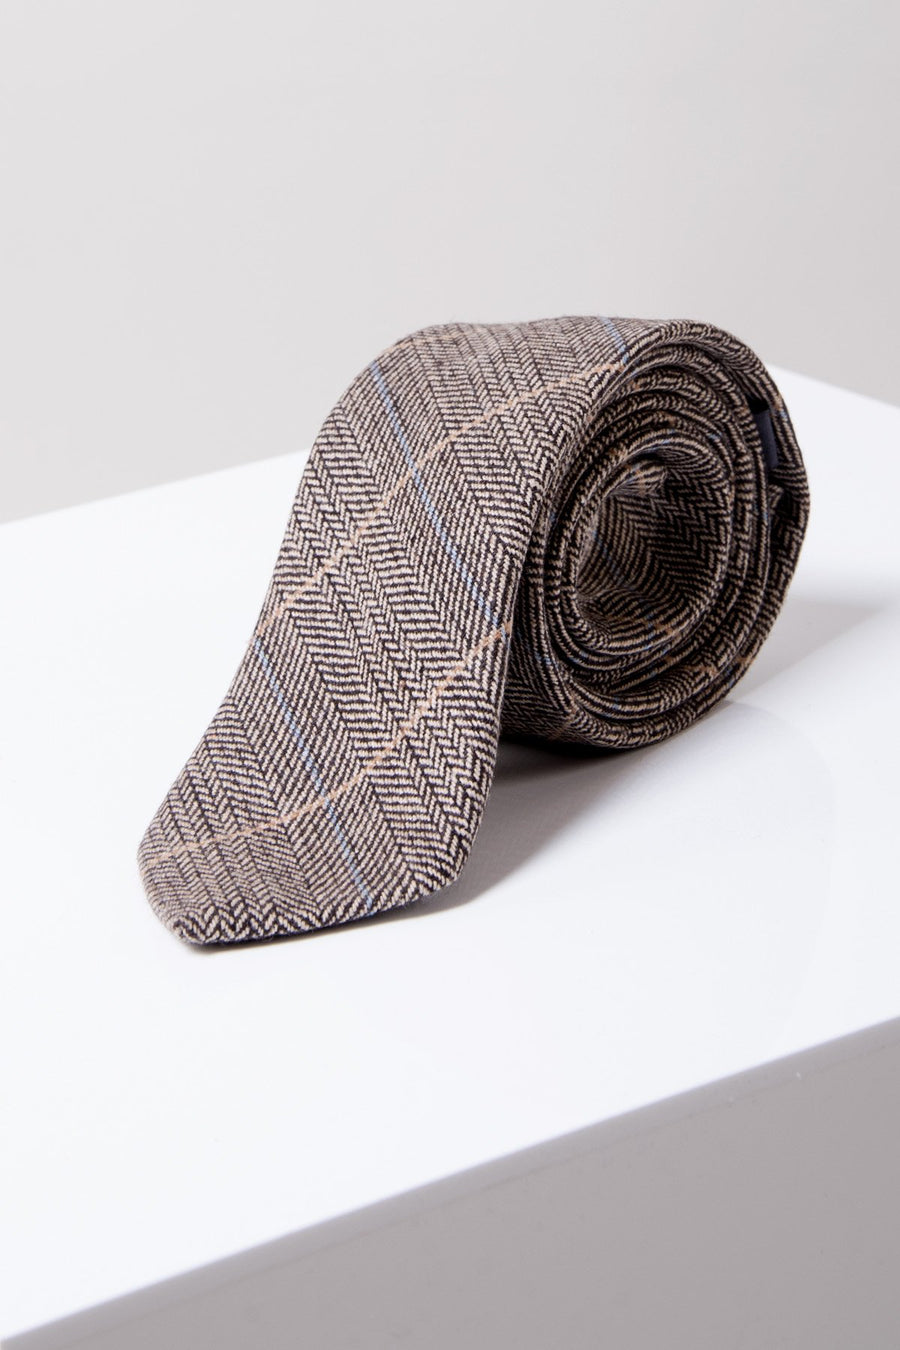 DX7 Tan Tweed Check Tie - Wedding Suit Direct